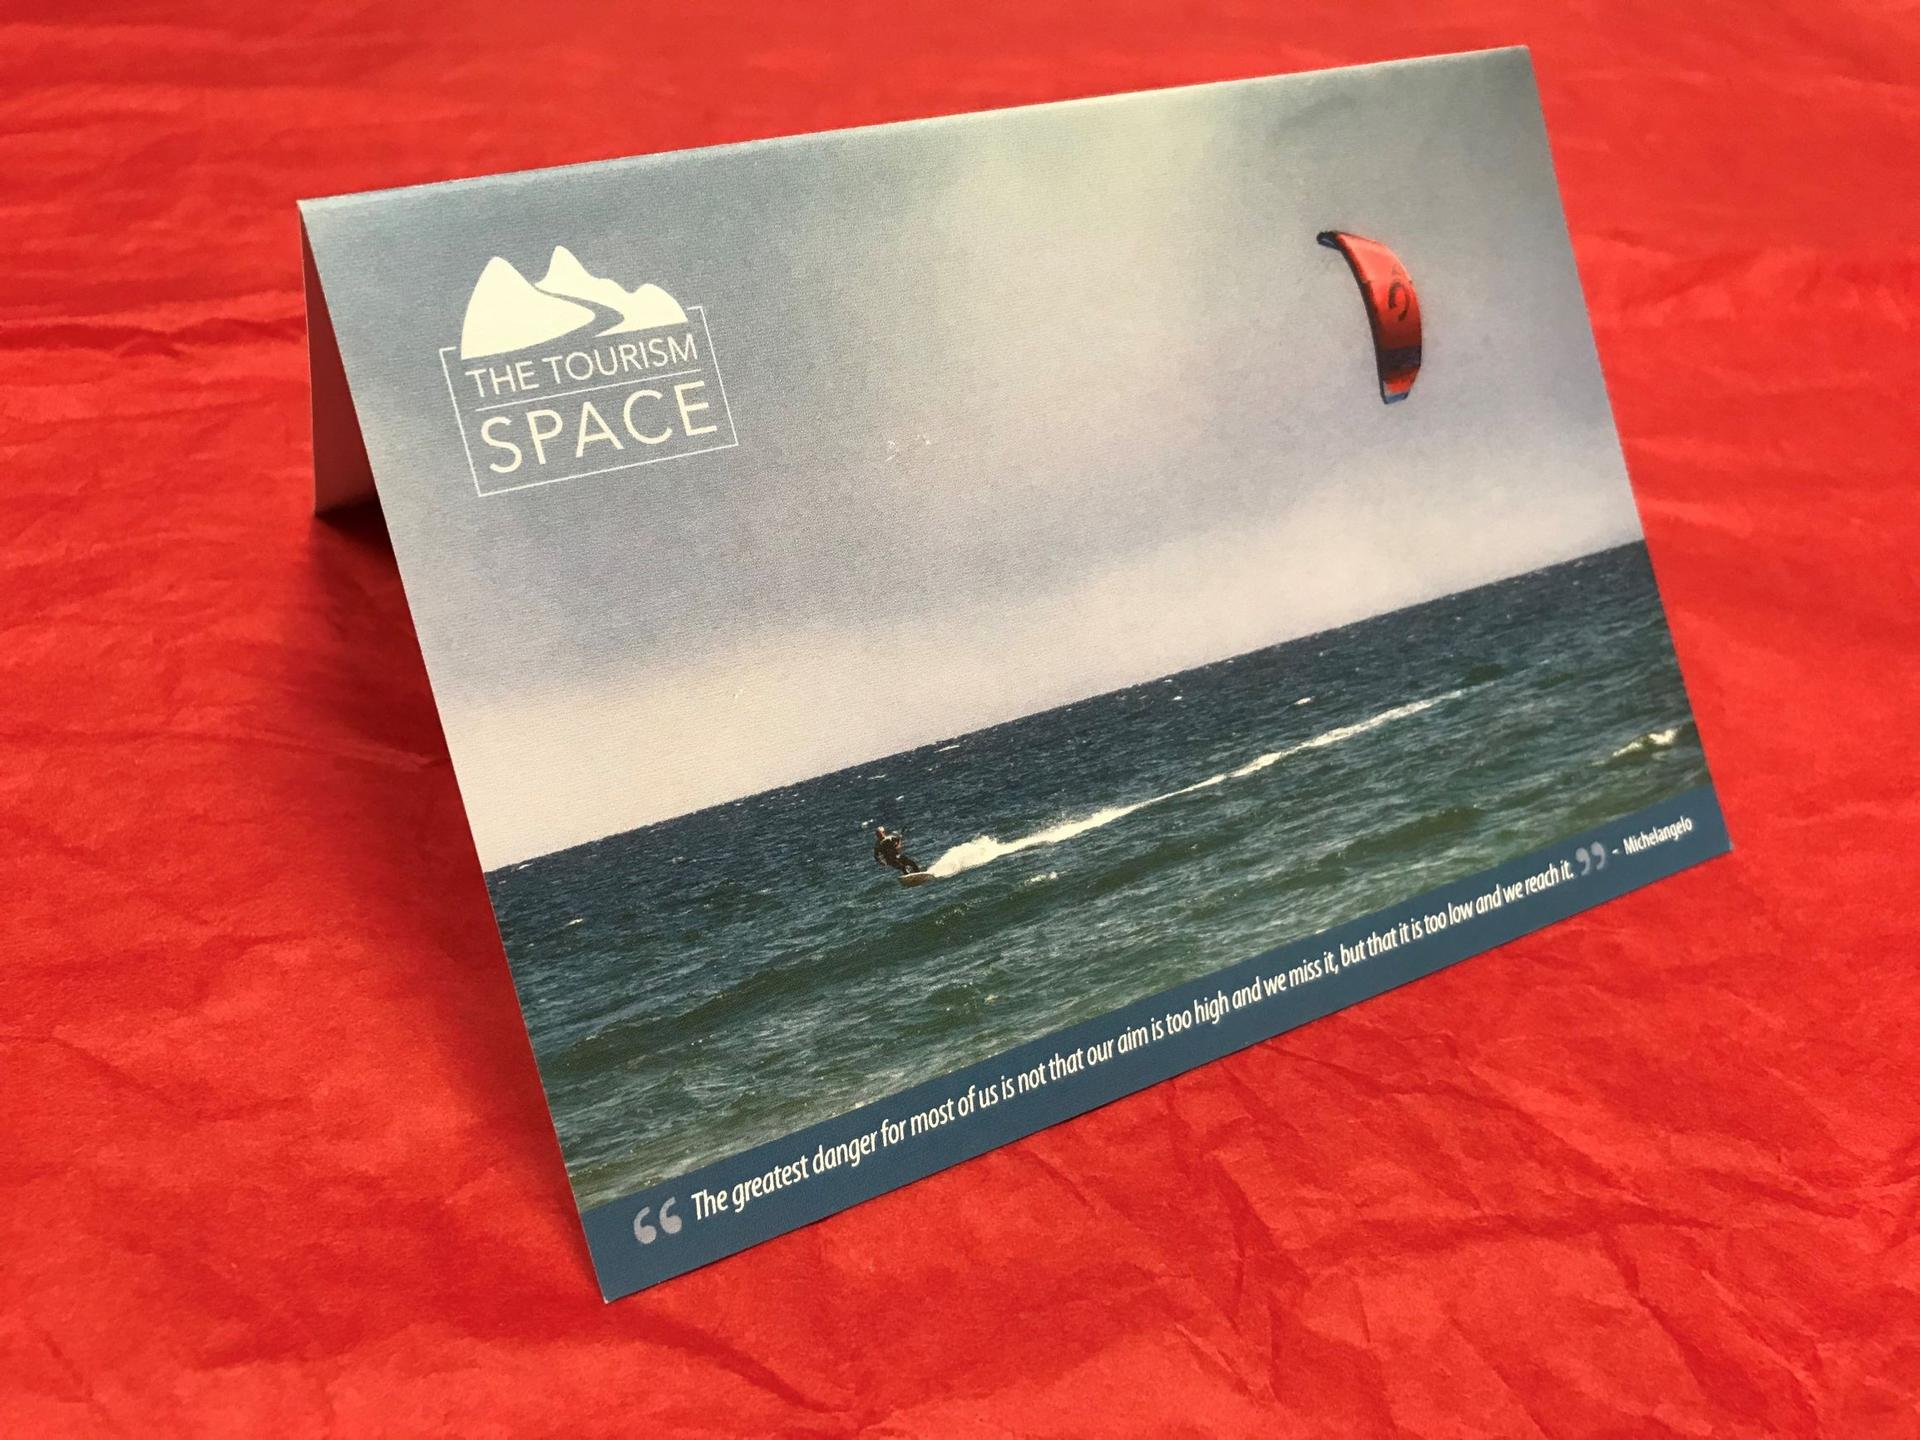 The Tourism Space Gift Voucher comes in a beautiful gift card to give to tourism business owners and managers.